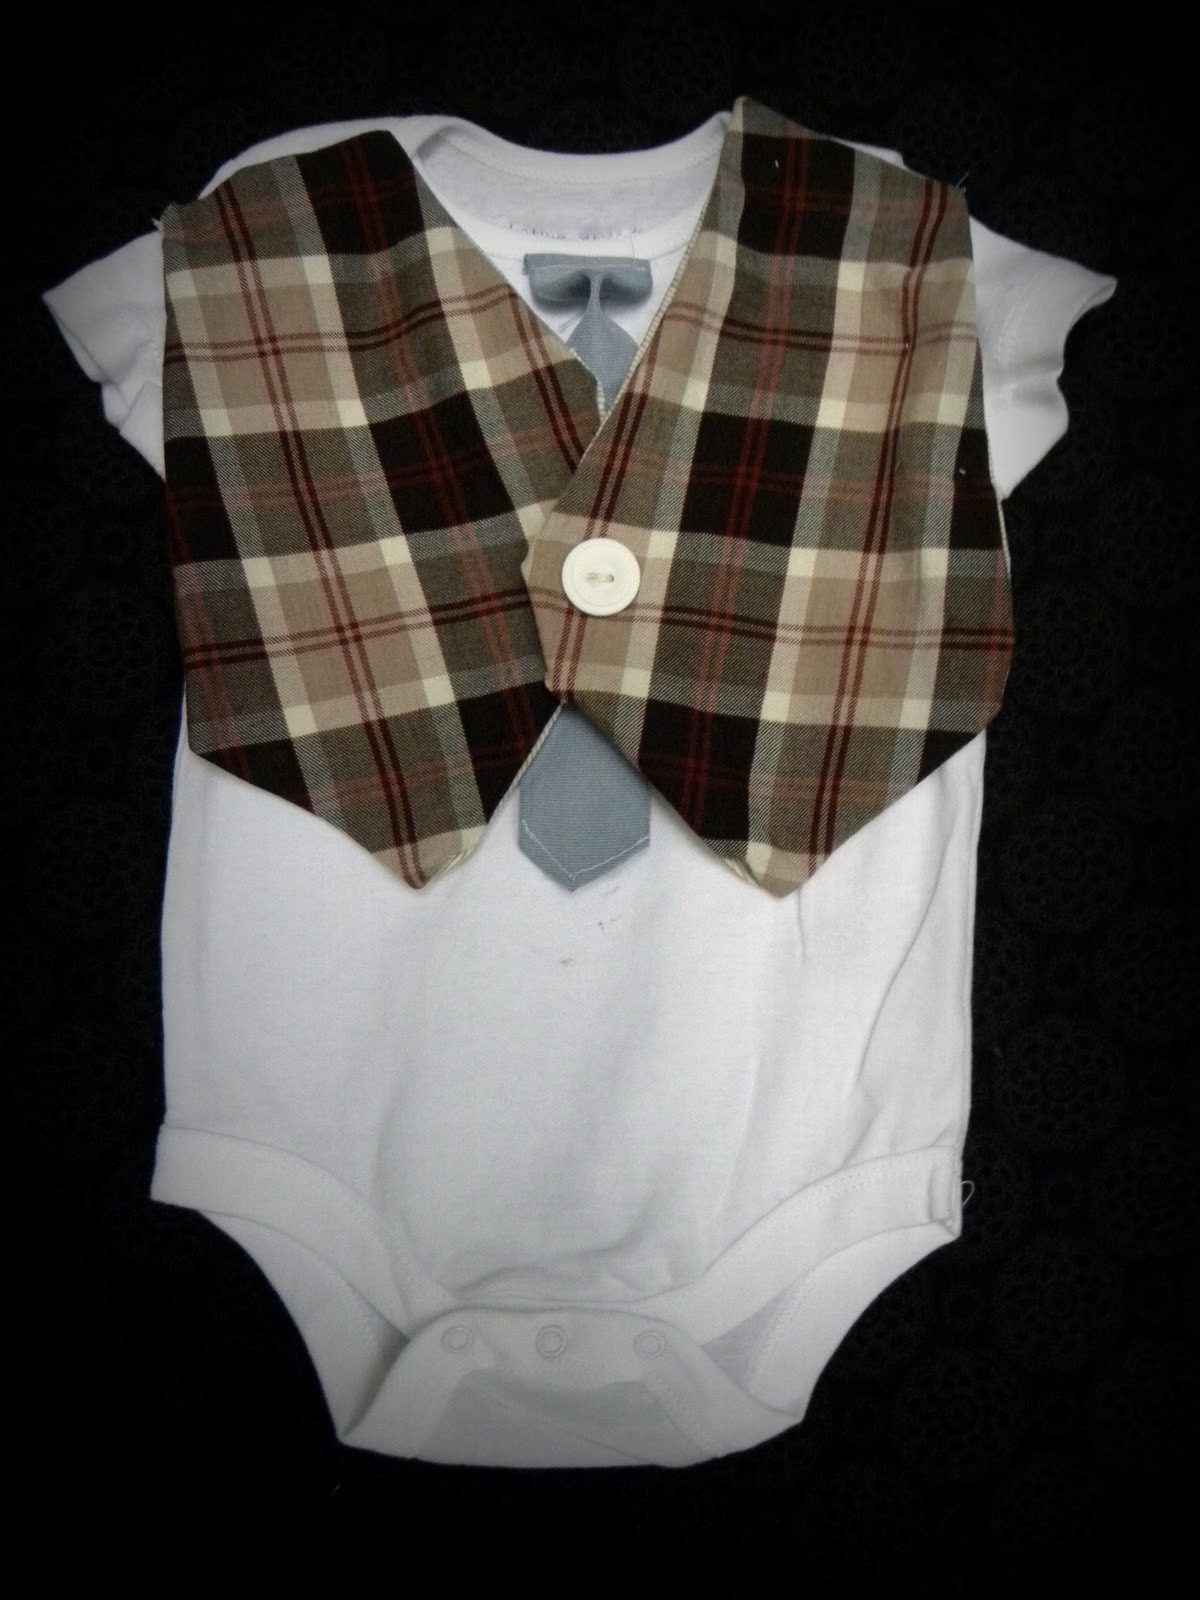 Best ideas about DIY Baby Onesie . Save or Pin Crafting Made Simple DIY baby onesie vest Now.